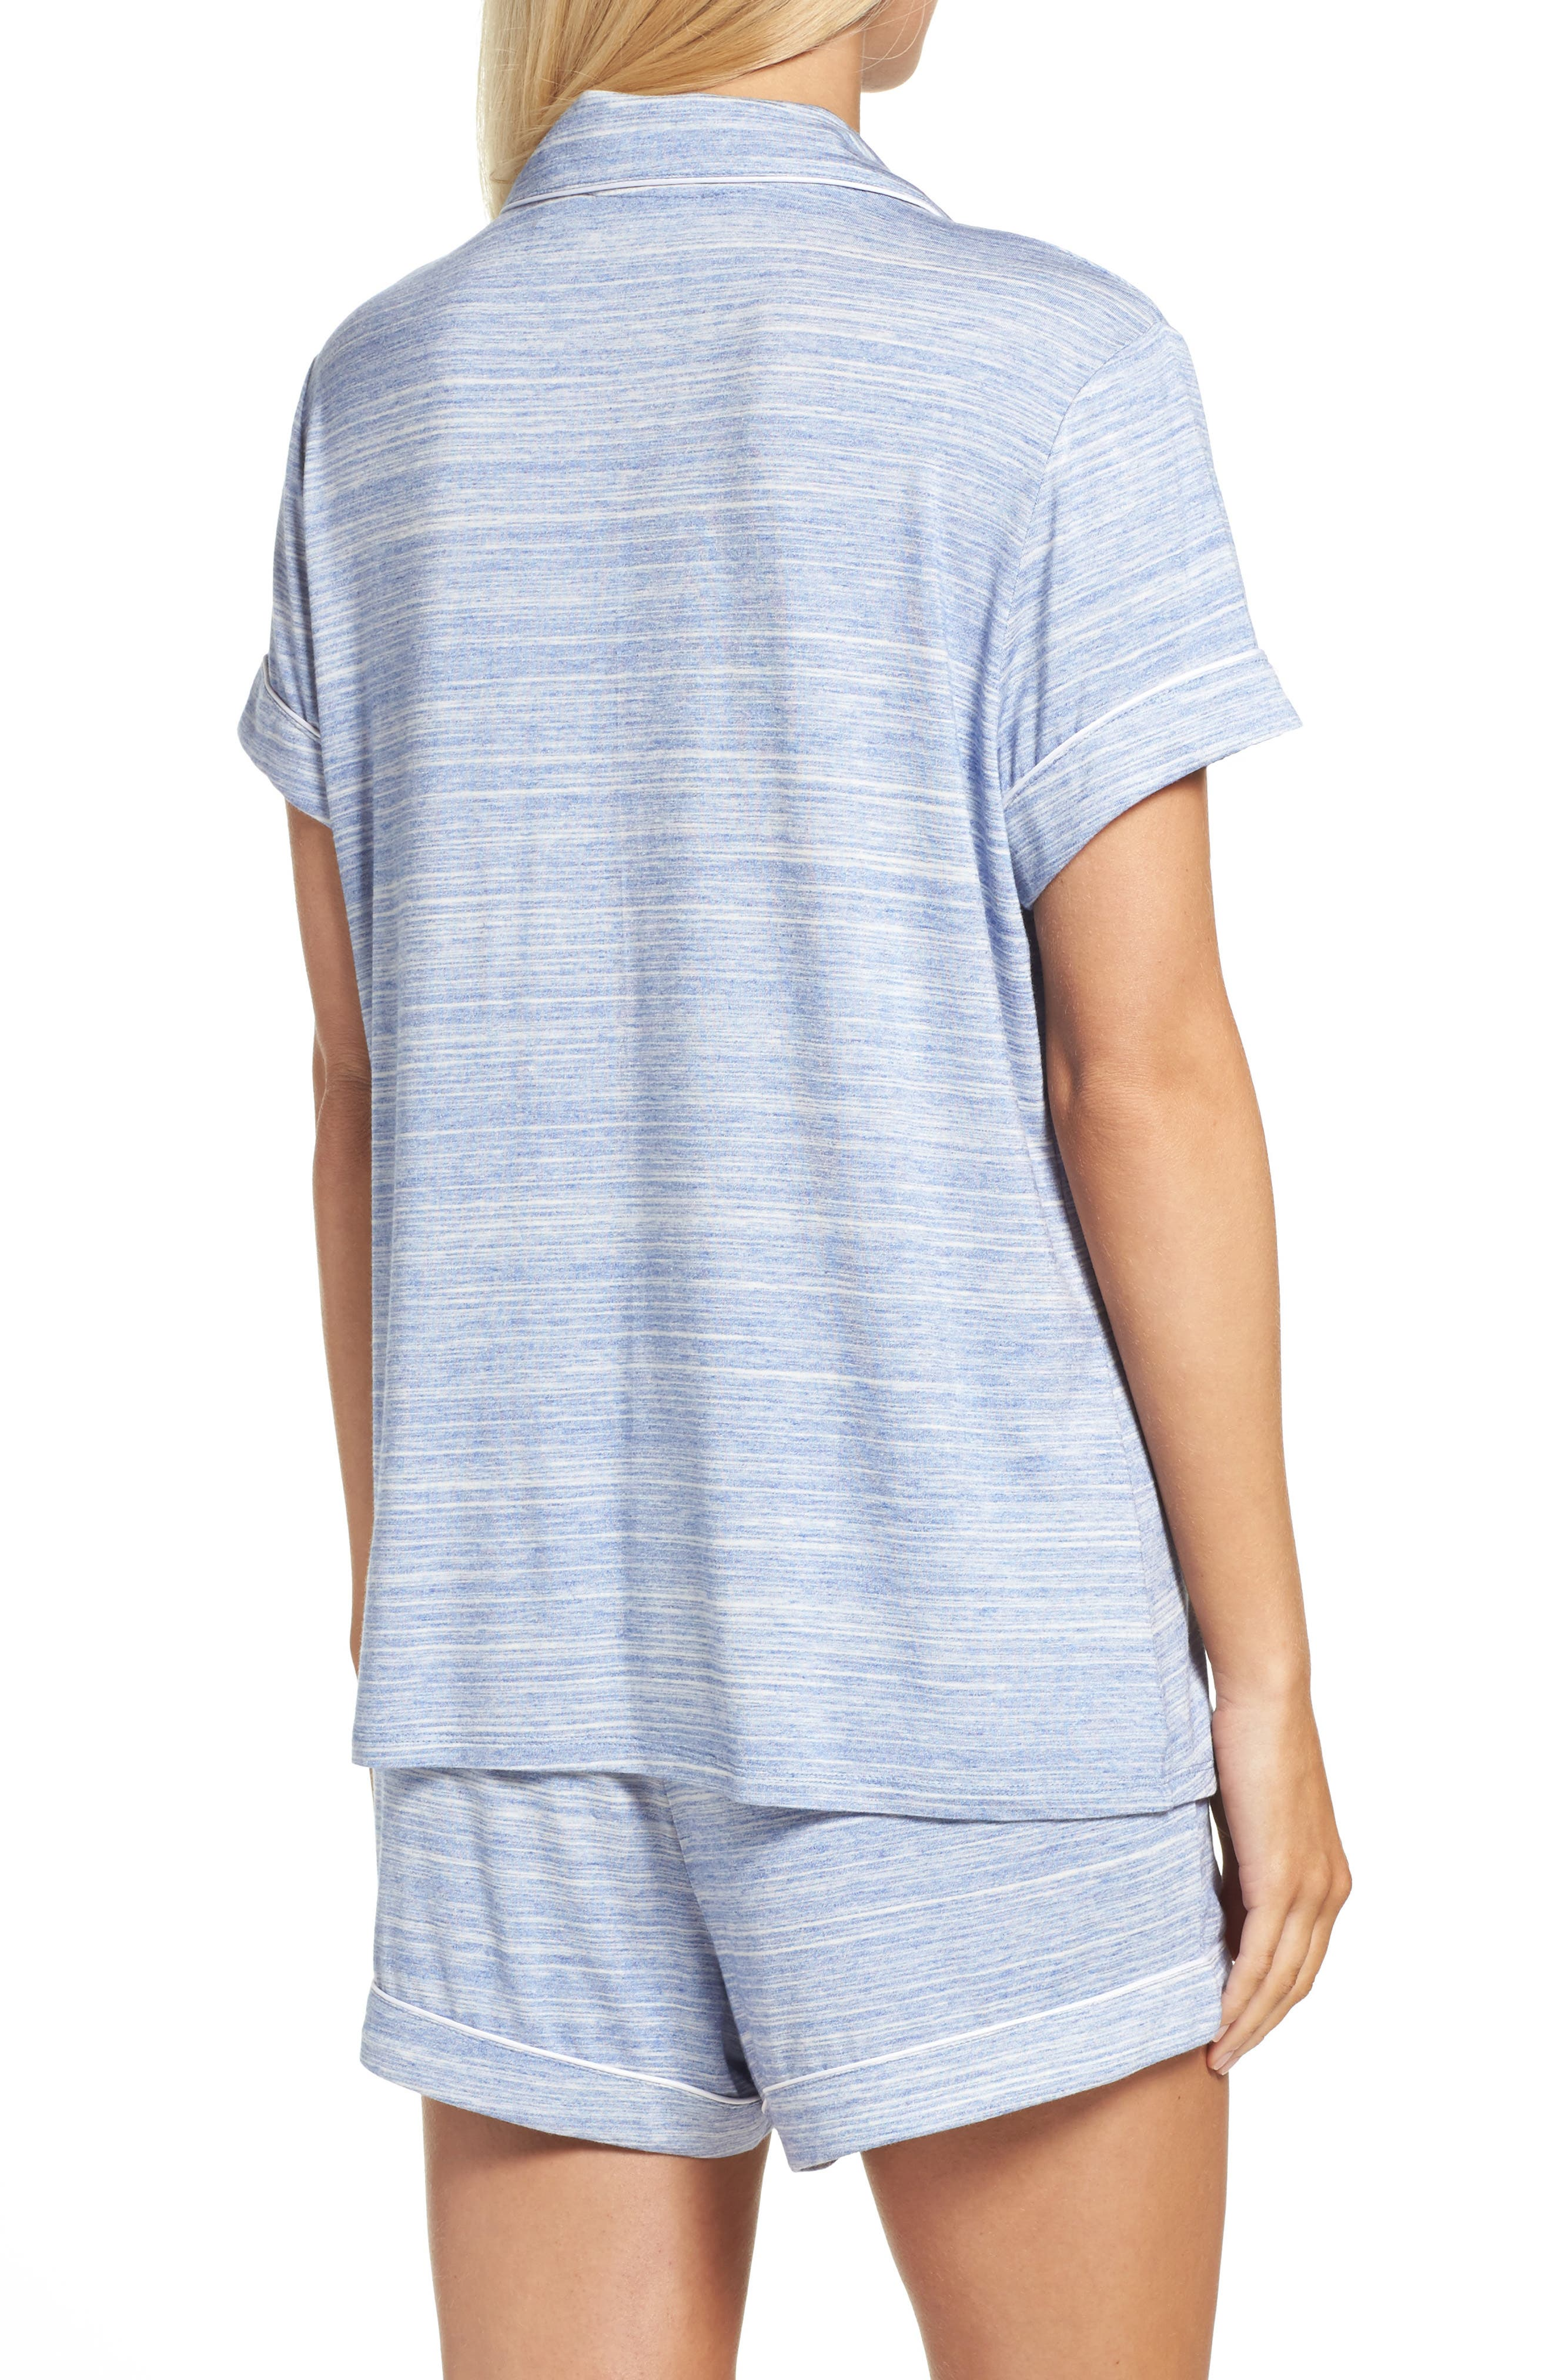 Alternate Image 2  - Nordstrom Lingerie 'Moonlight' Short Pajamas